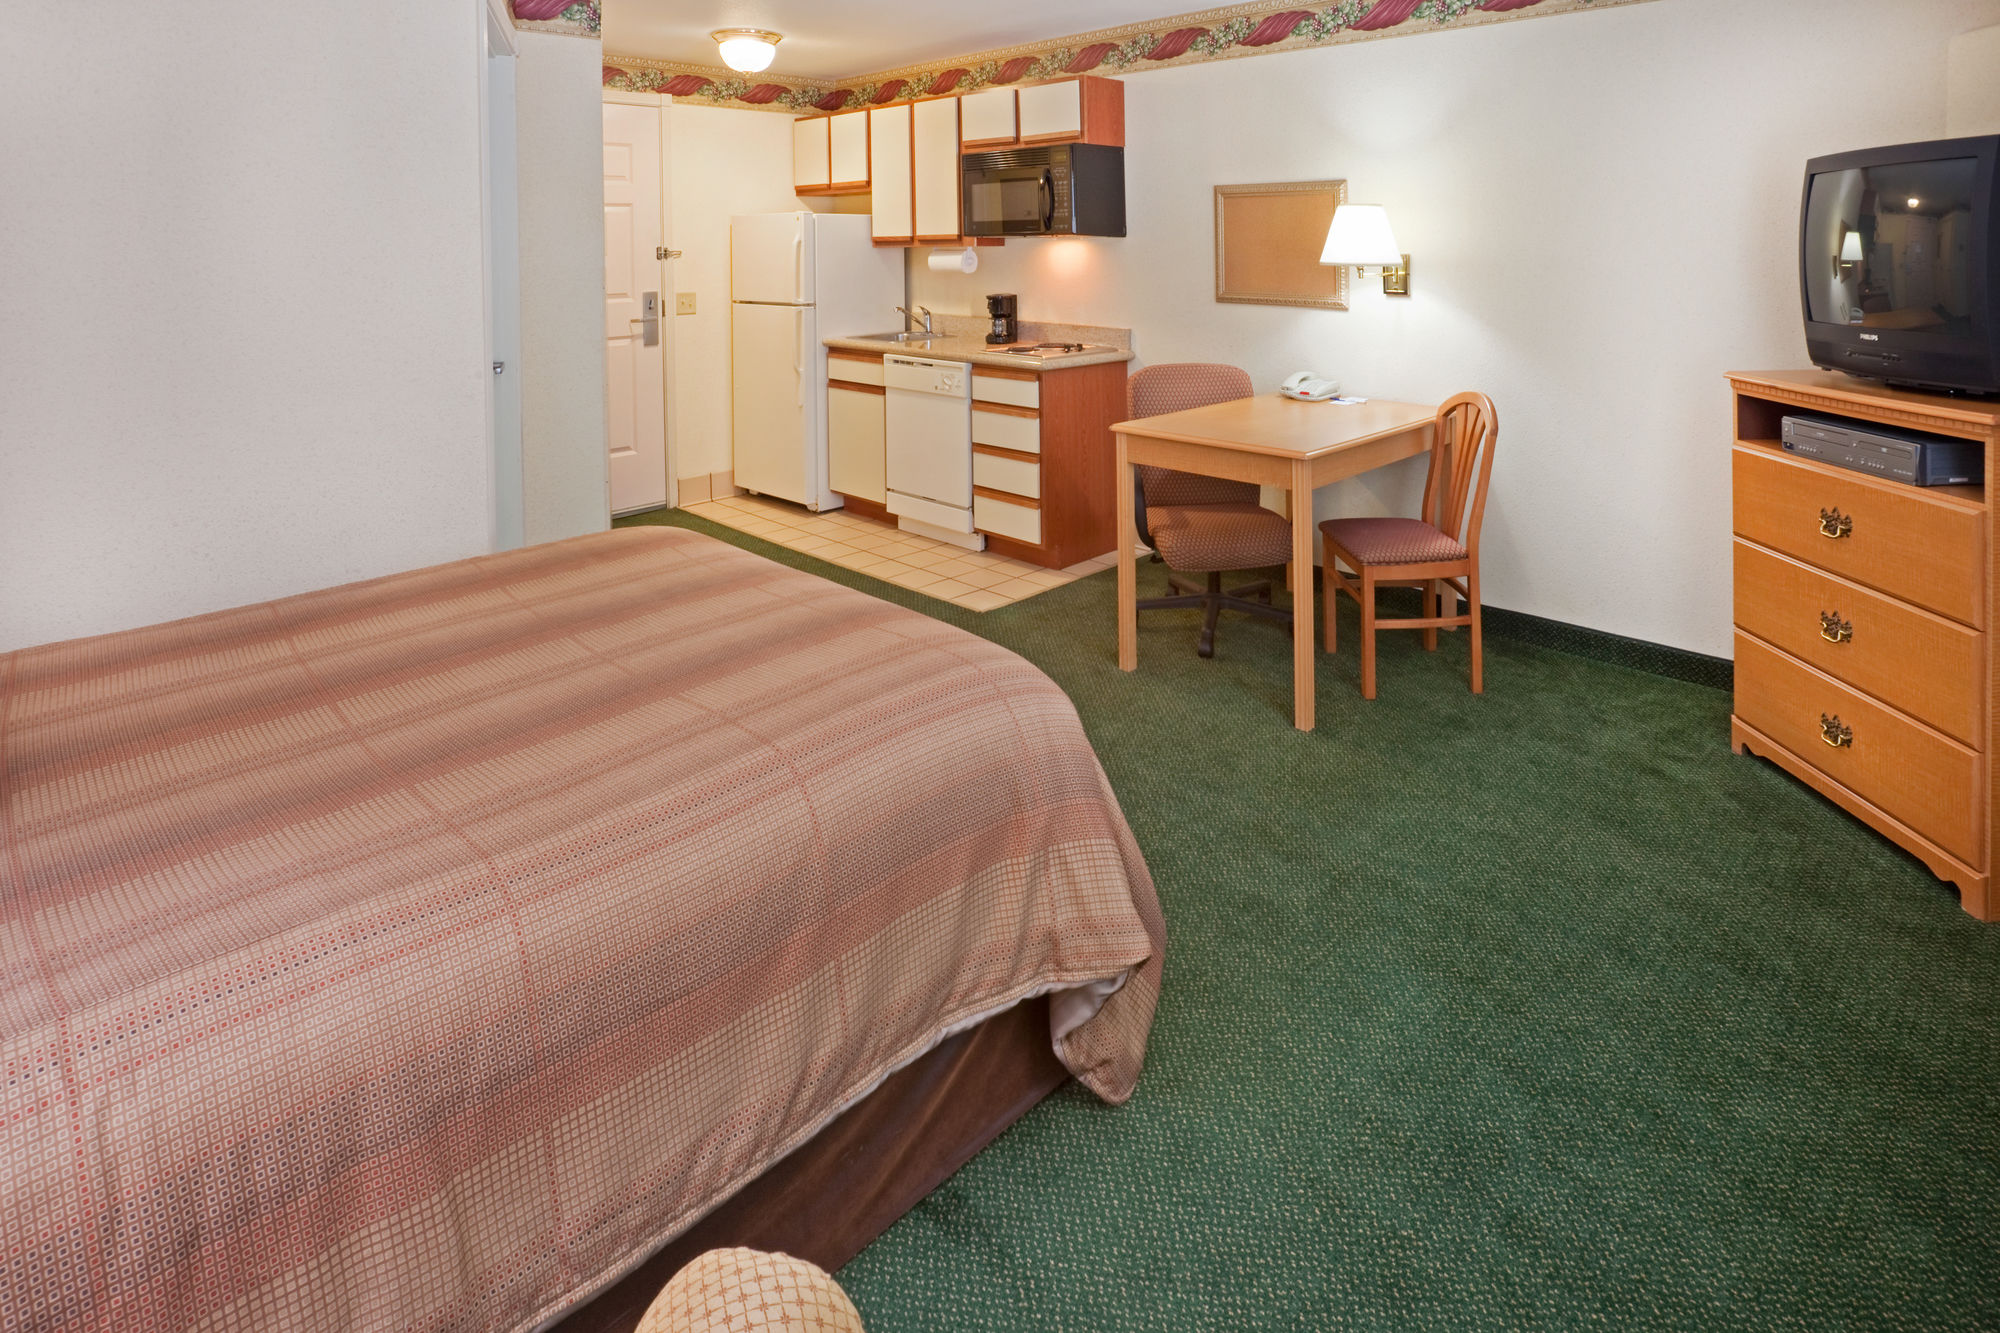 Tyler Hotel Coupons For Tyler Texas Freehotelcoupons Com